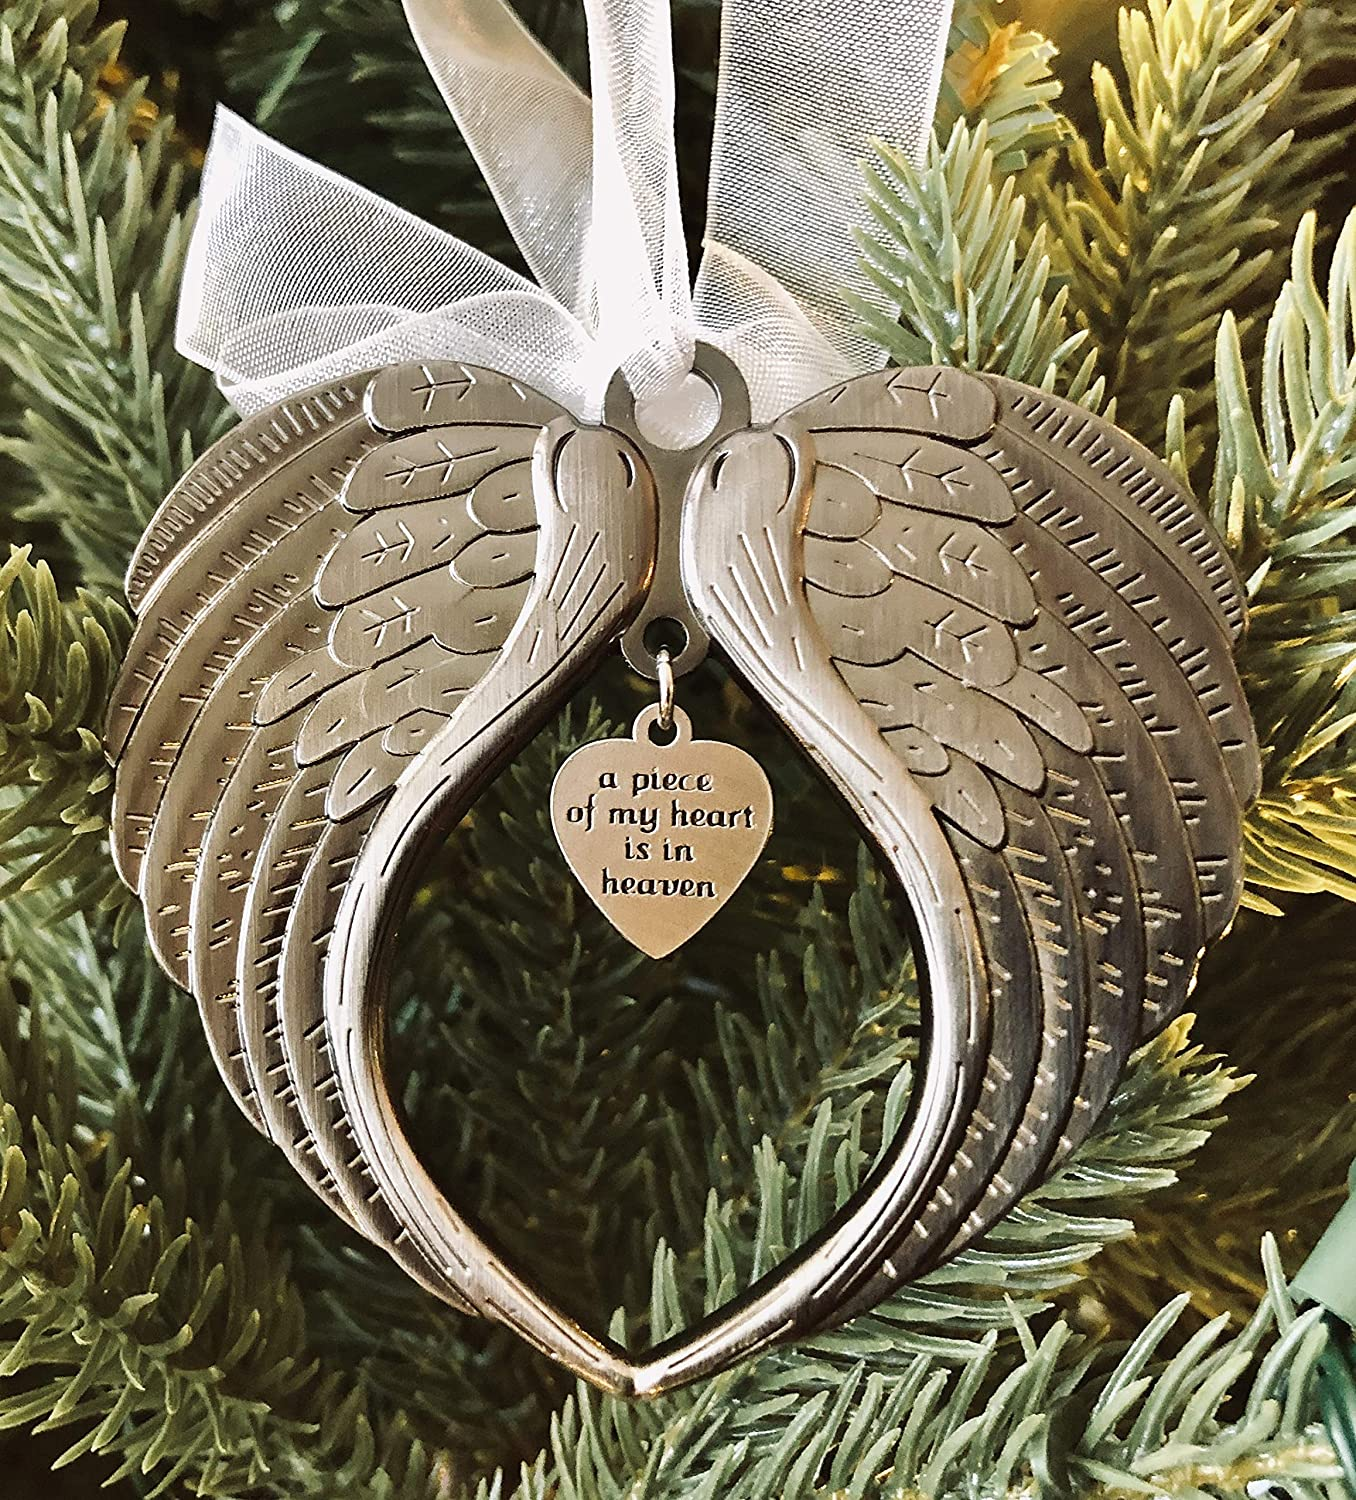 K9King Christmas Ornaments Angel Wings - A Piece of My Heart is in Heaven Ornament for Christmas Tree - Double Sided Memorial Ornament for Loss of Loved One - Luxurious Silk Ribbon & Red Gift Bag